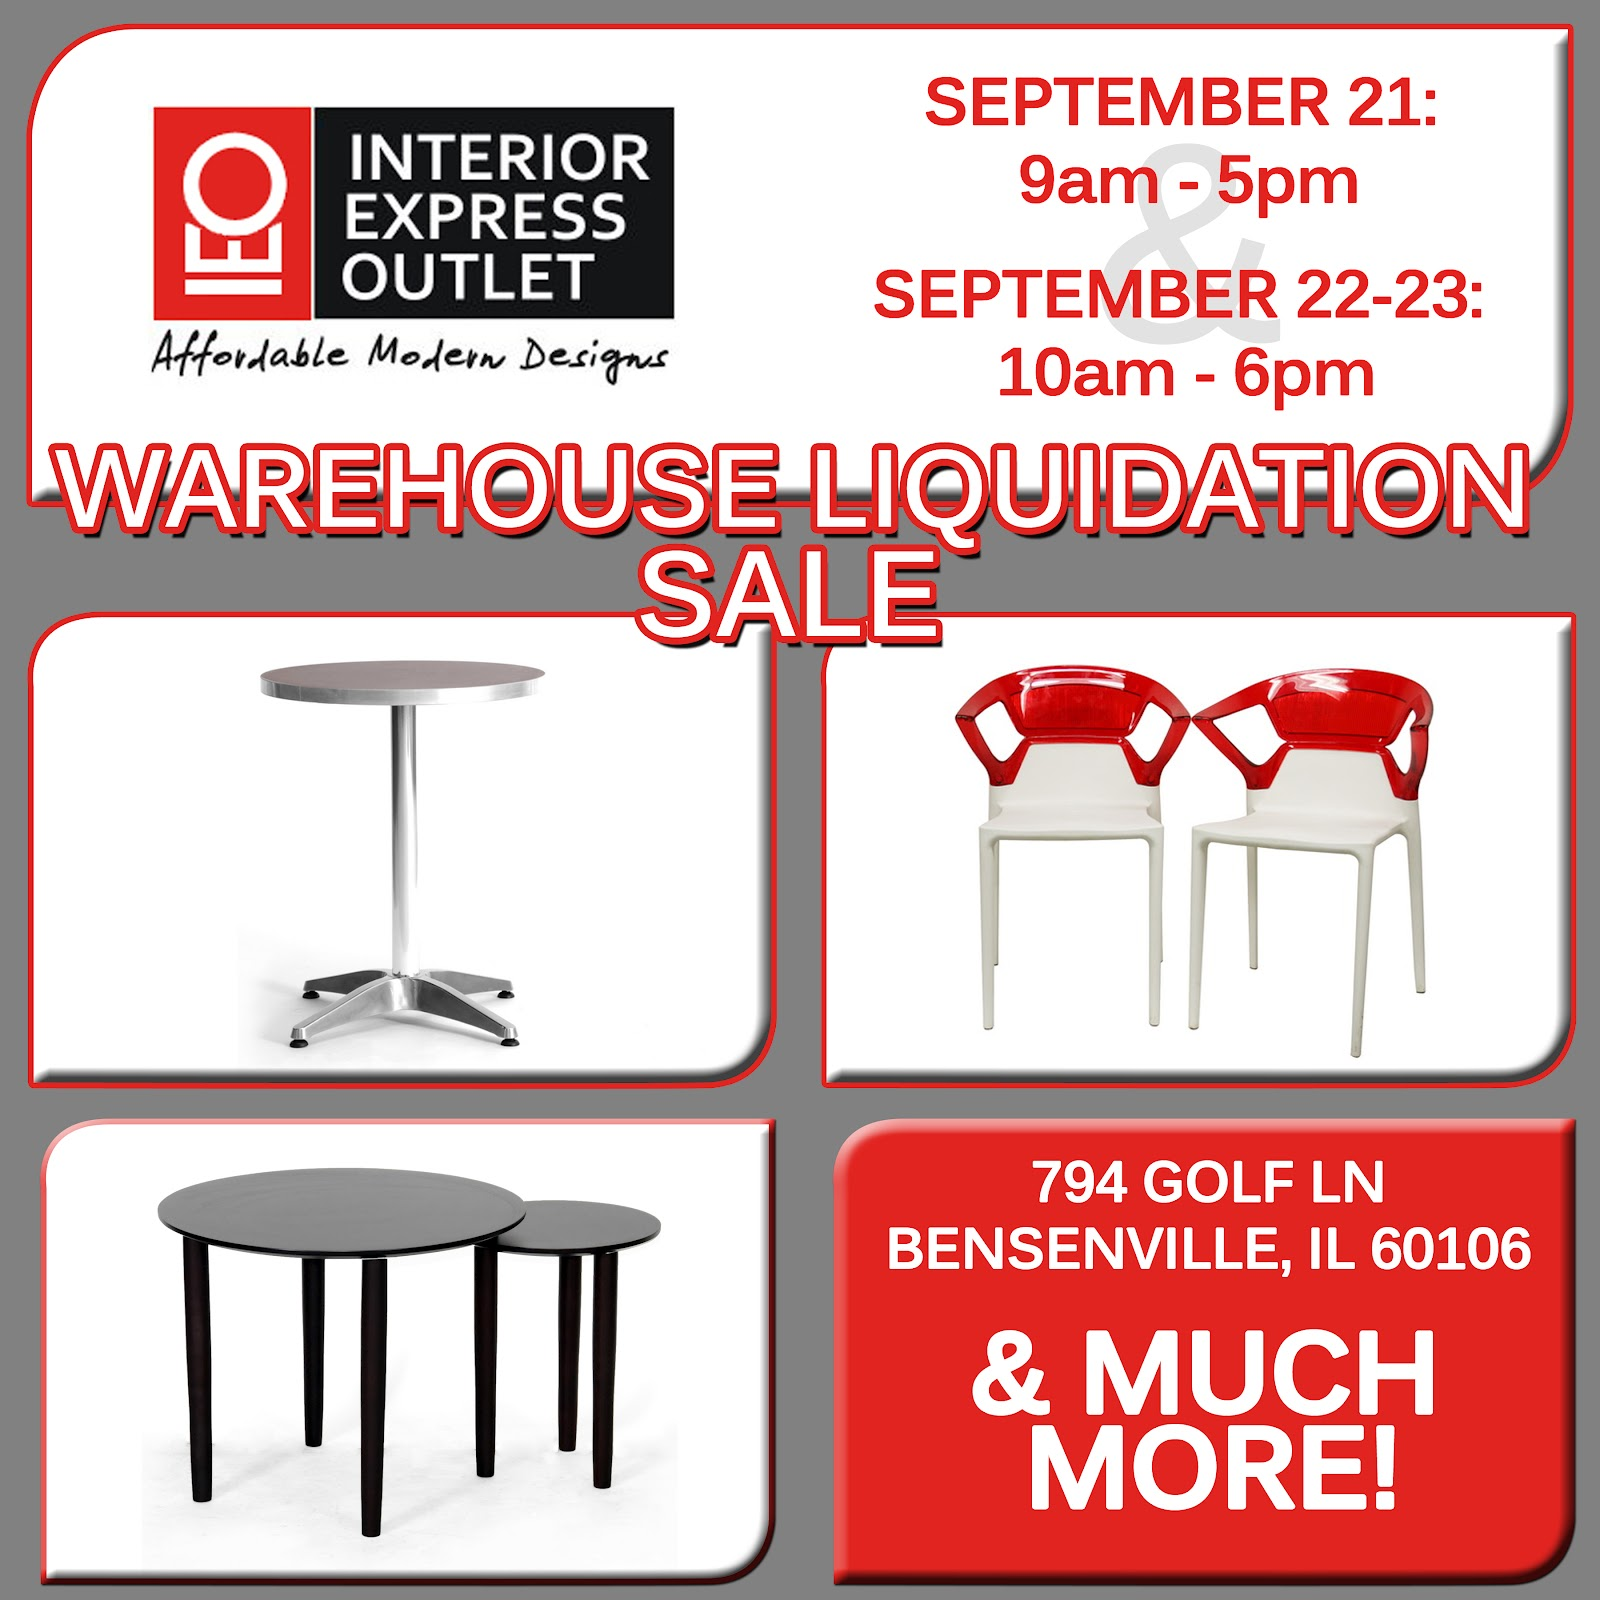 Furniture Sales This Weekend: Interior Express Outlet Blog